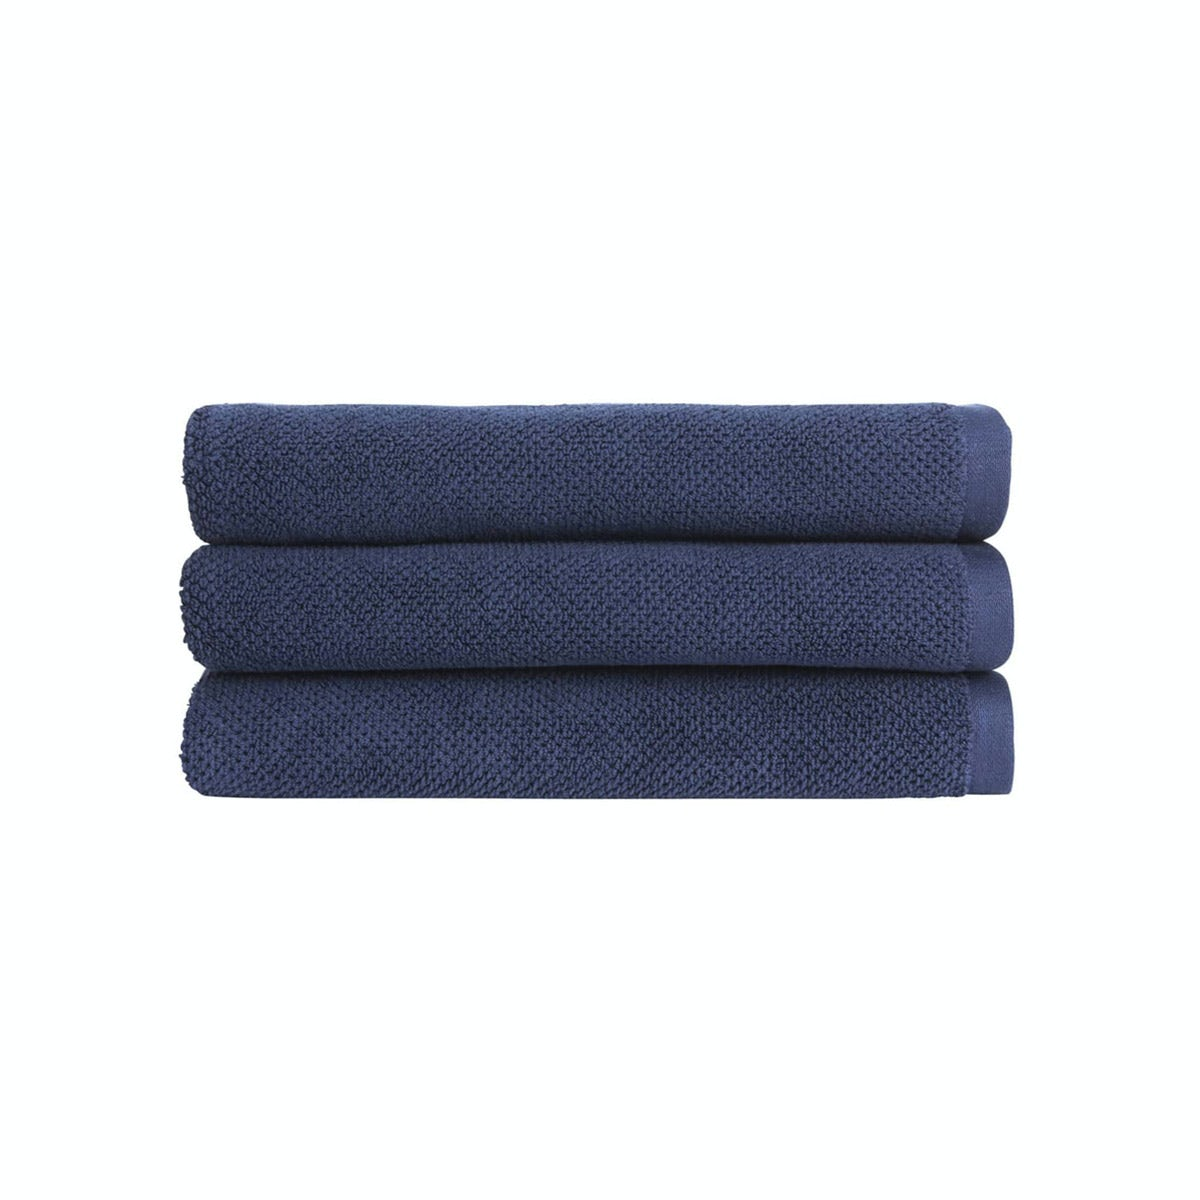 Christy Brixton midnight hand towel